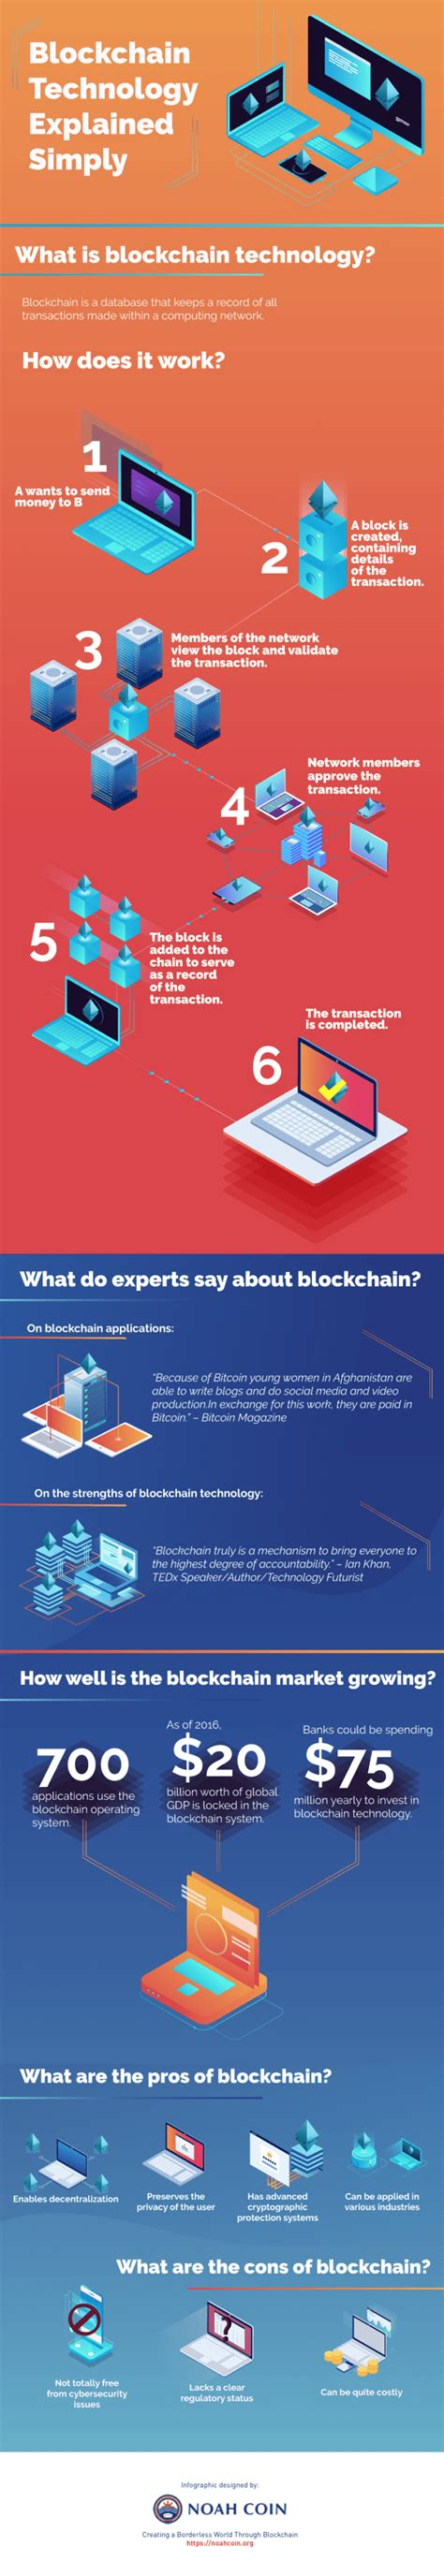 Seo Explained Simply - blockchain technology explained simply infographic